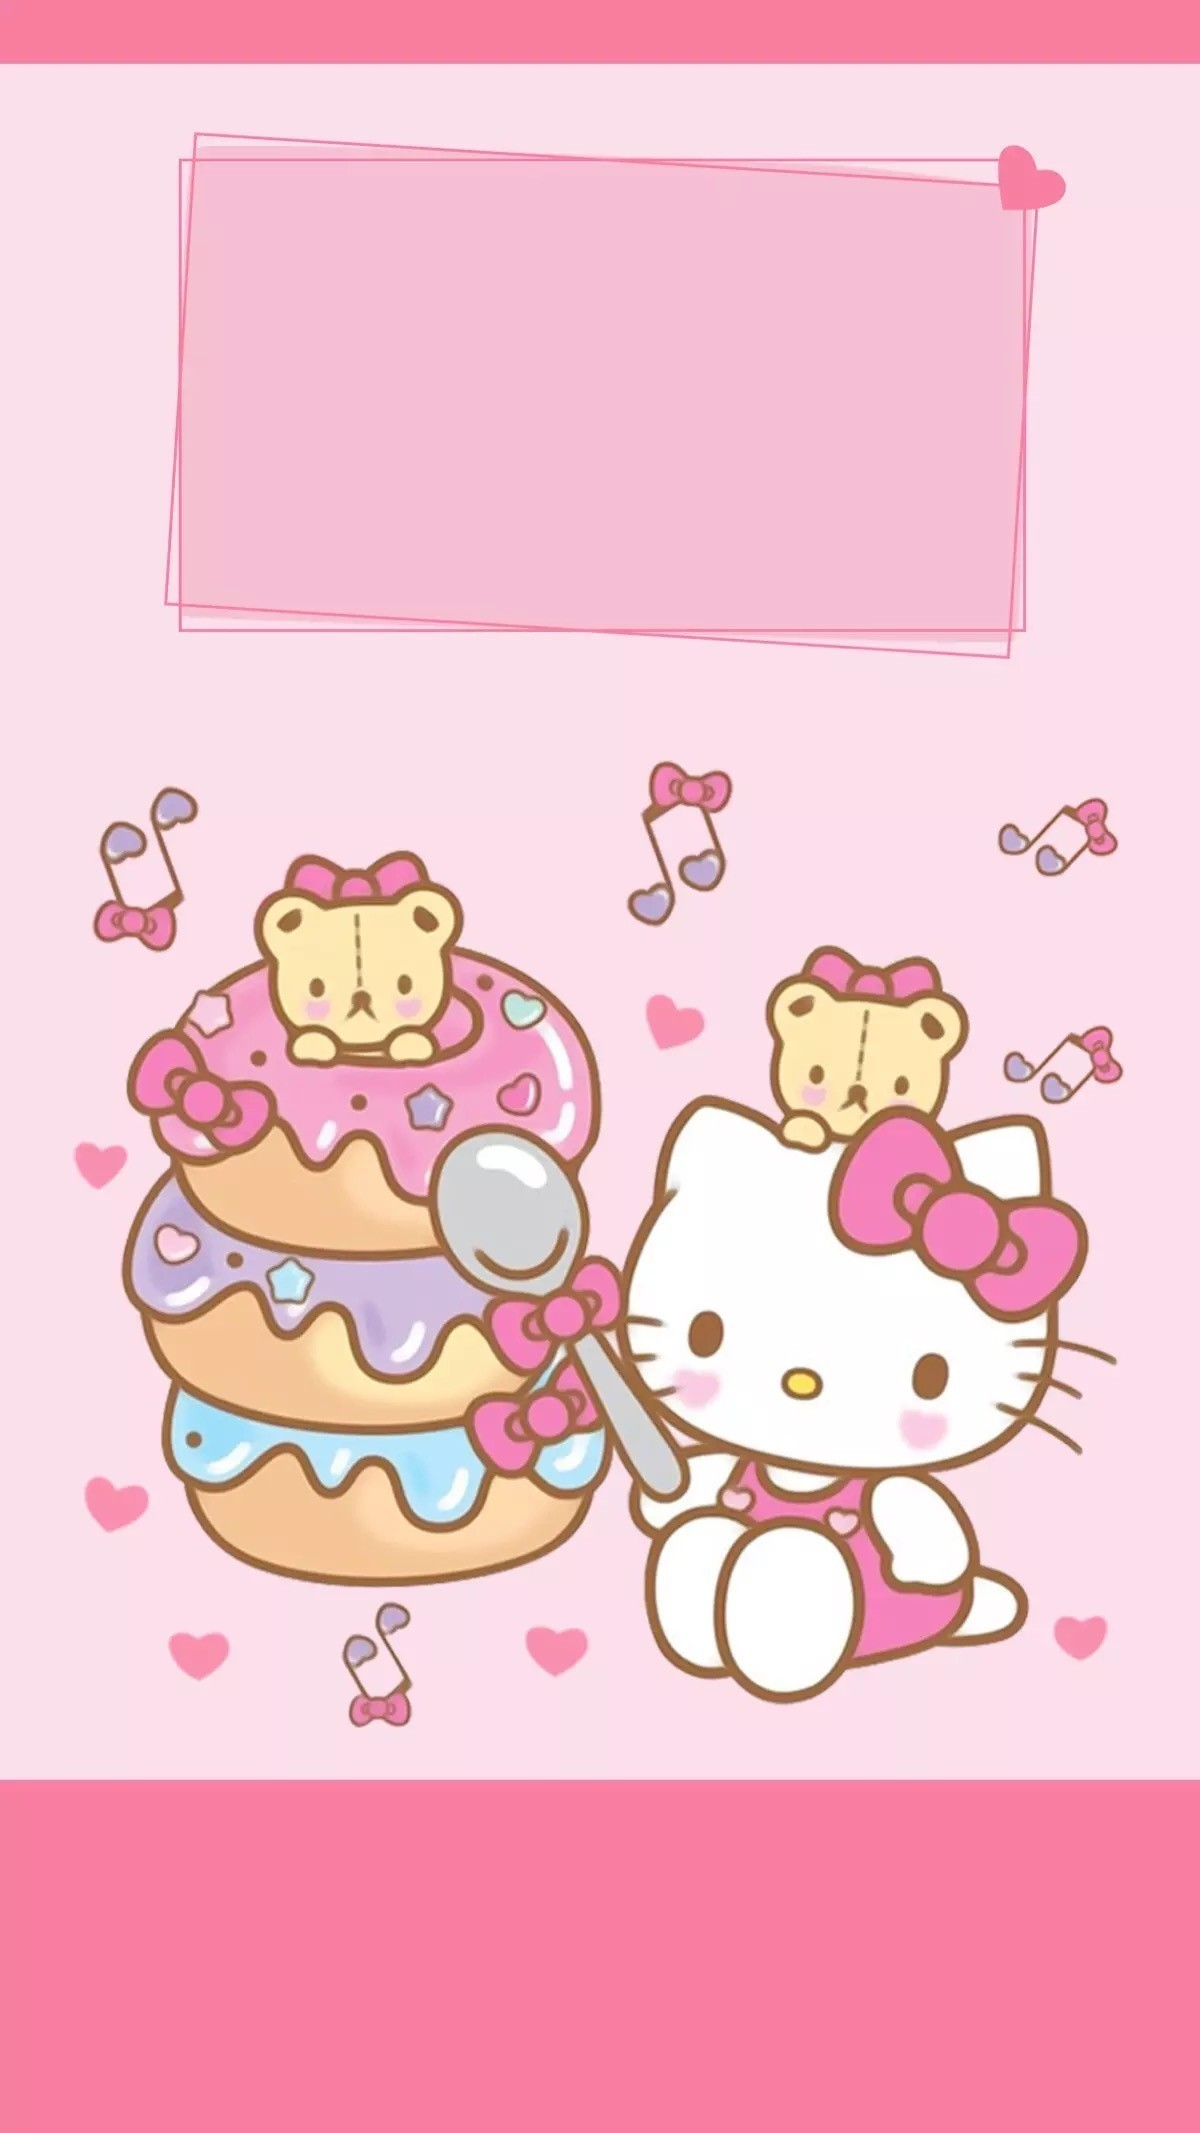 1200x2133 hello kitty wallpapers 2018 rh wallpapertag com 2018 happy new year  wallpaper welcome 2018 wallpaper